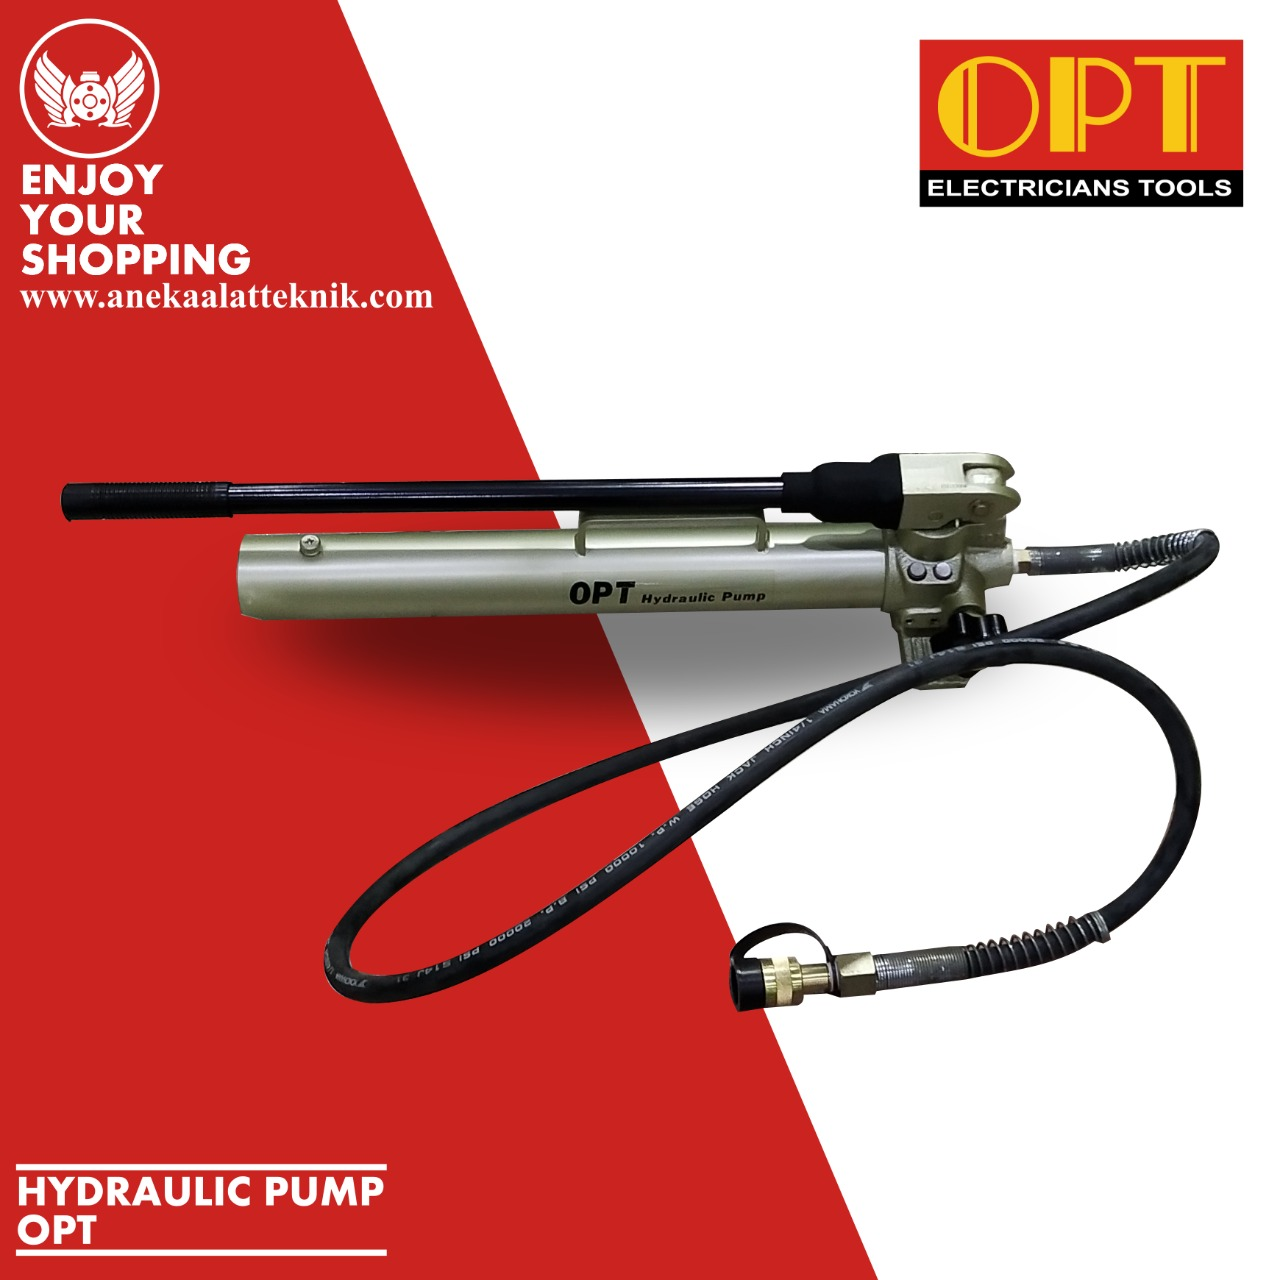 HYDRAULIC PUMP OPT